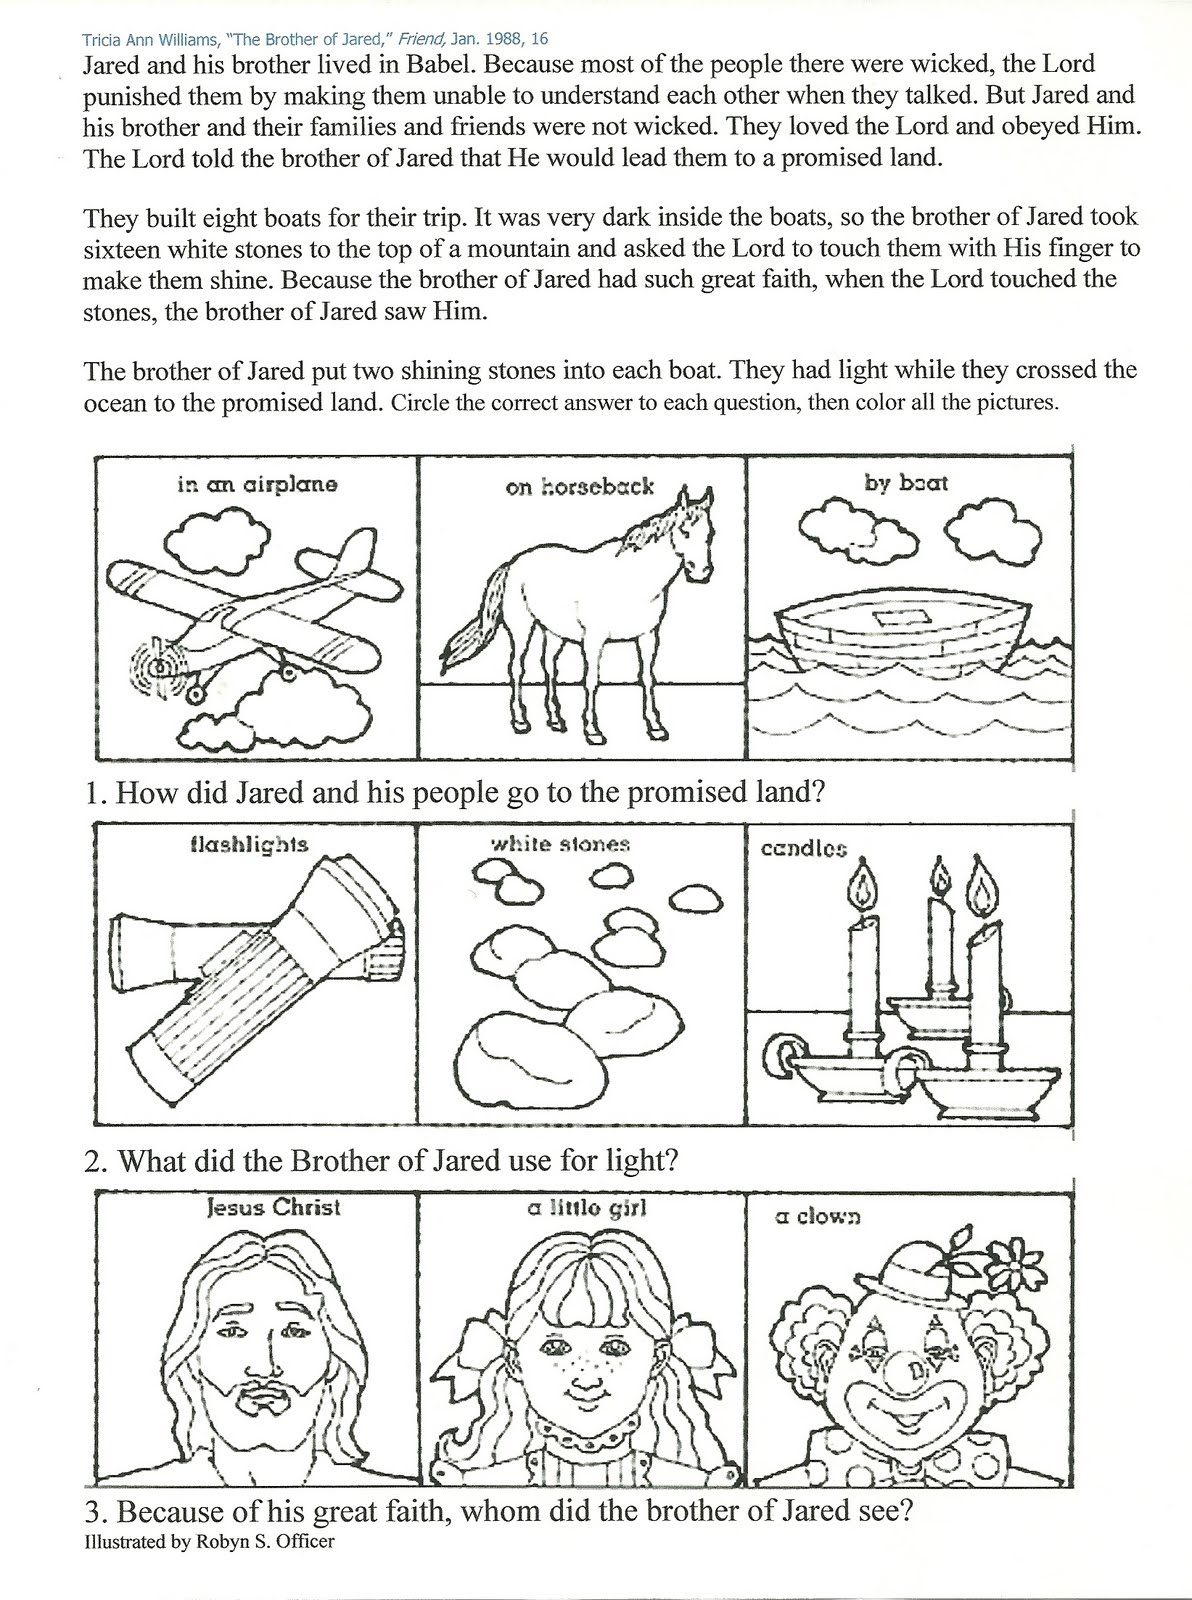 jaredites coloring pages - photo#14